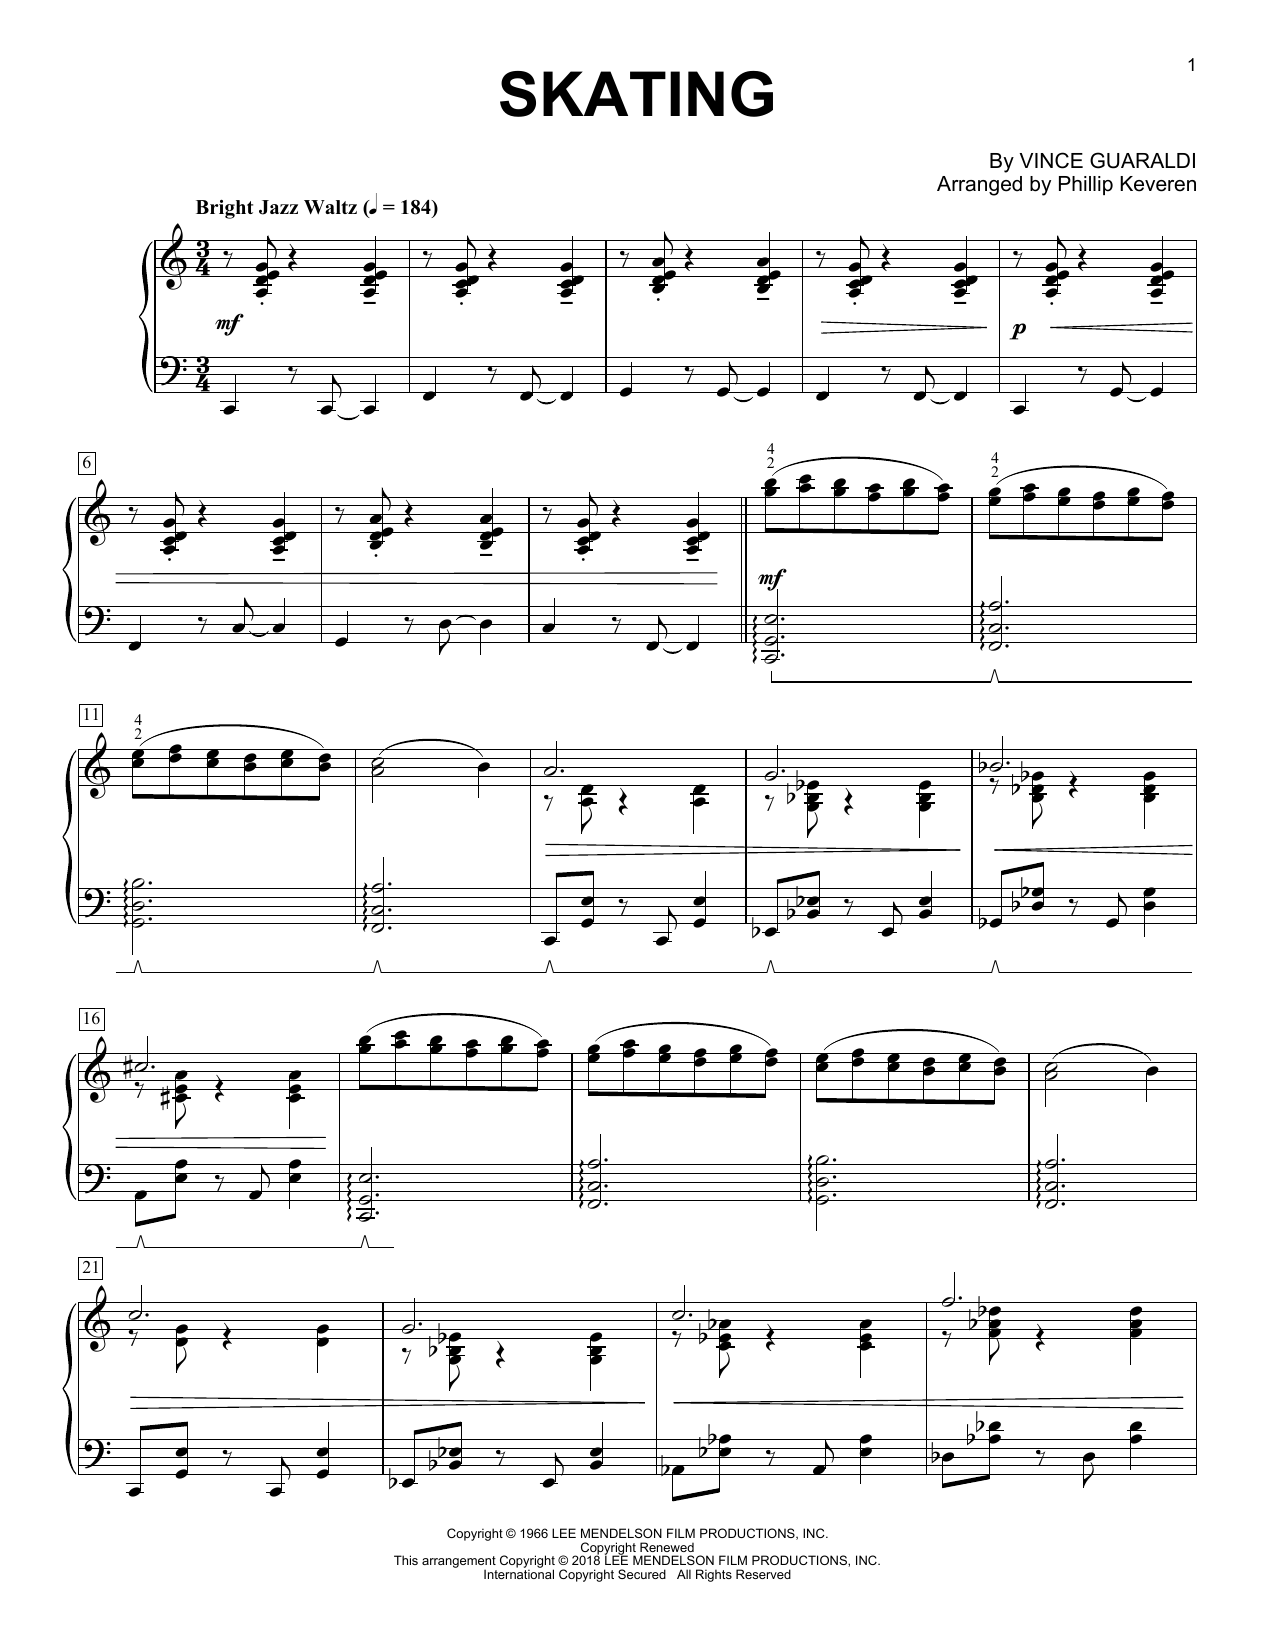 Vince Guaraldi Skating (from A Charlie Brown Christmas) (arr. Phillip Keveren) sheet music notes and chords. Download Printable PDF.